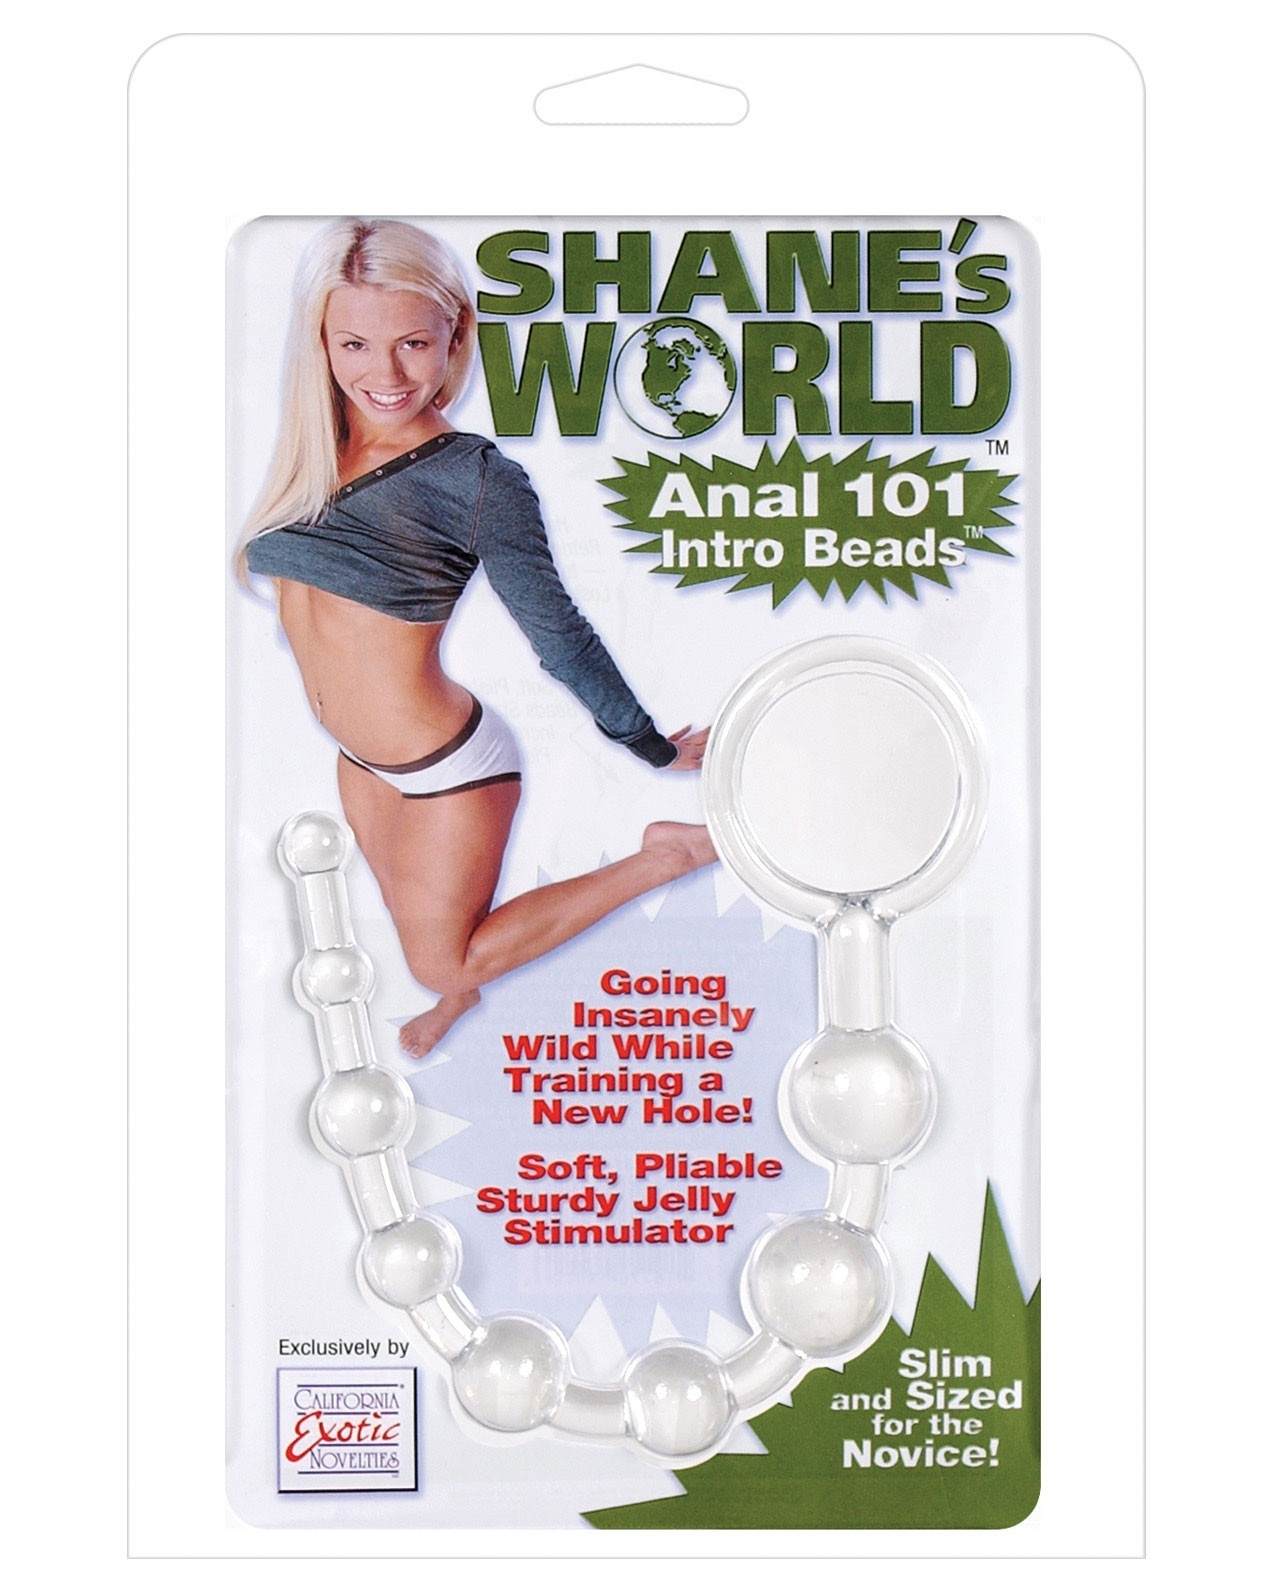 Shanes World Anal 101 Intro Beads Eroticx